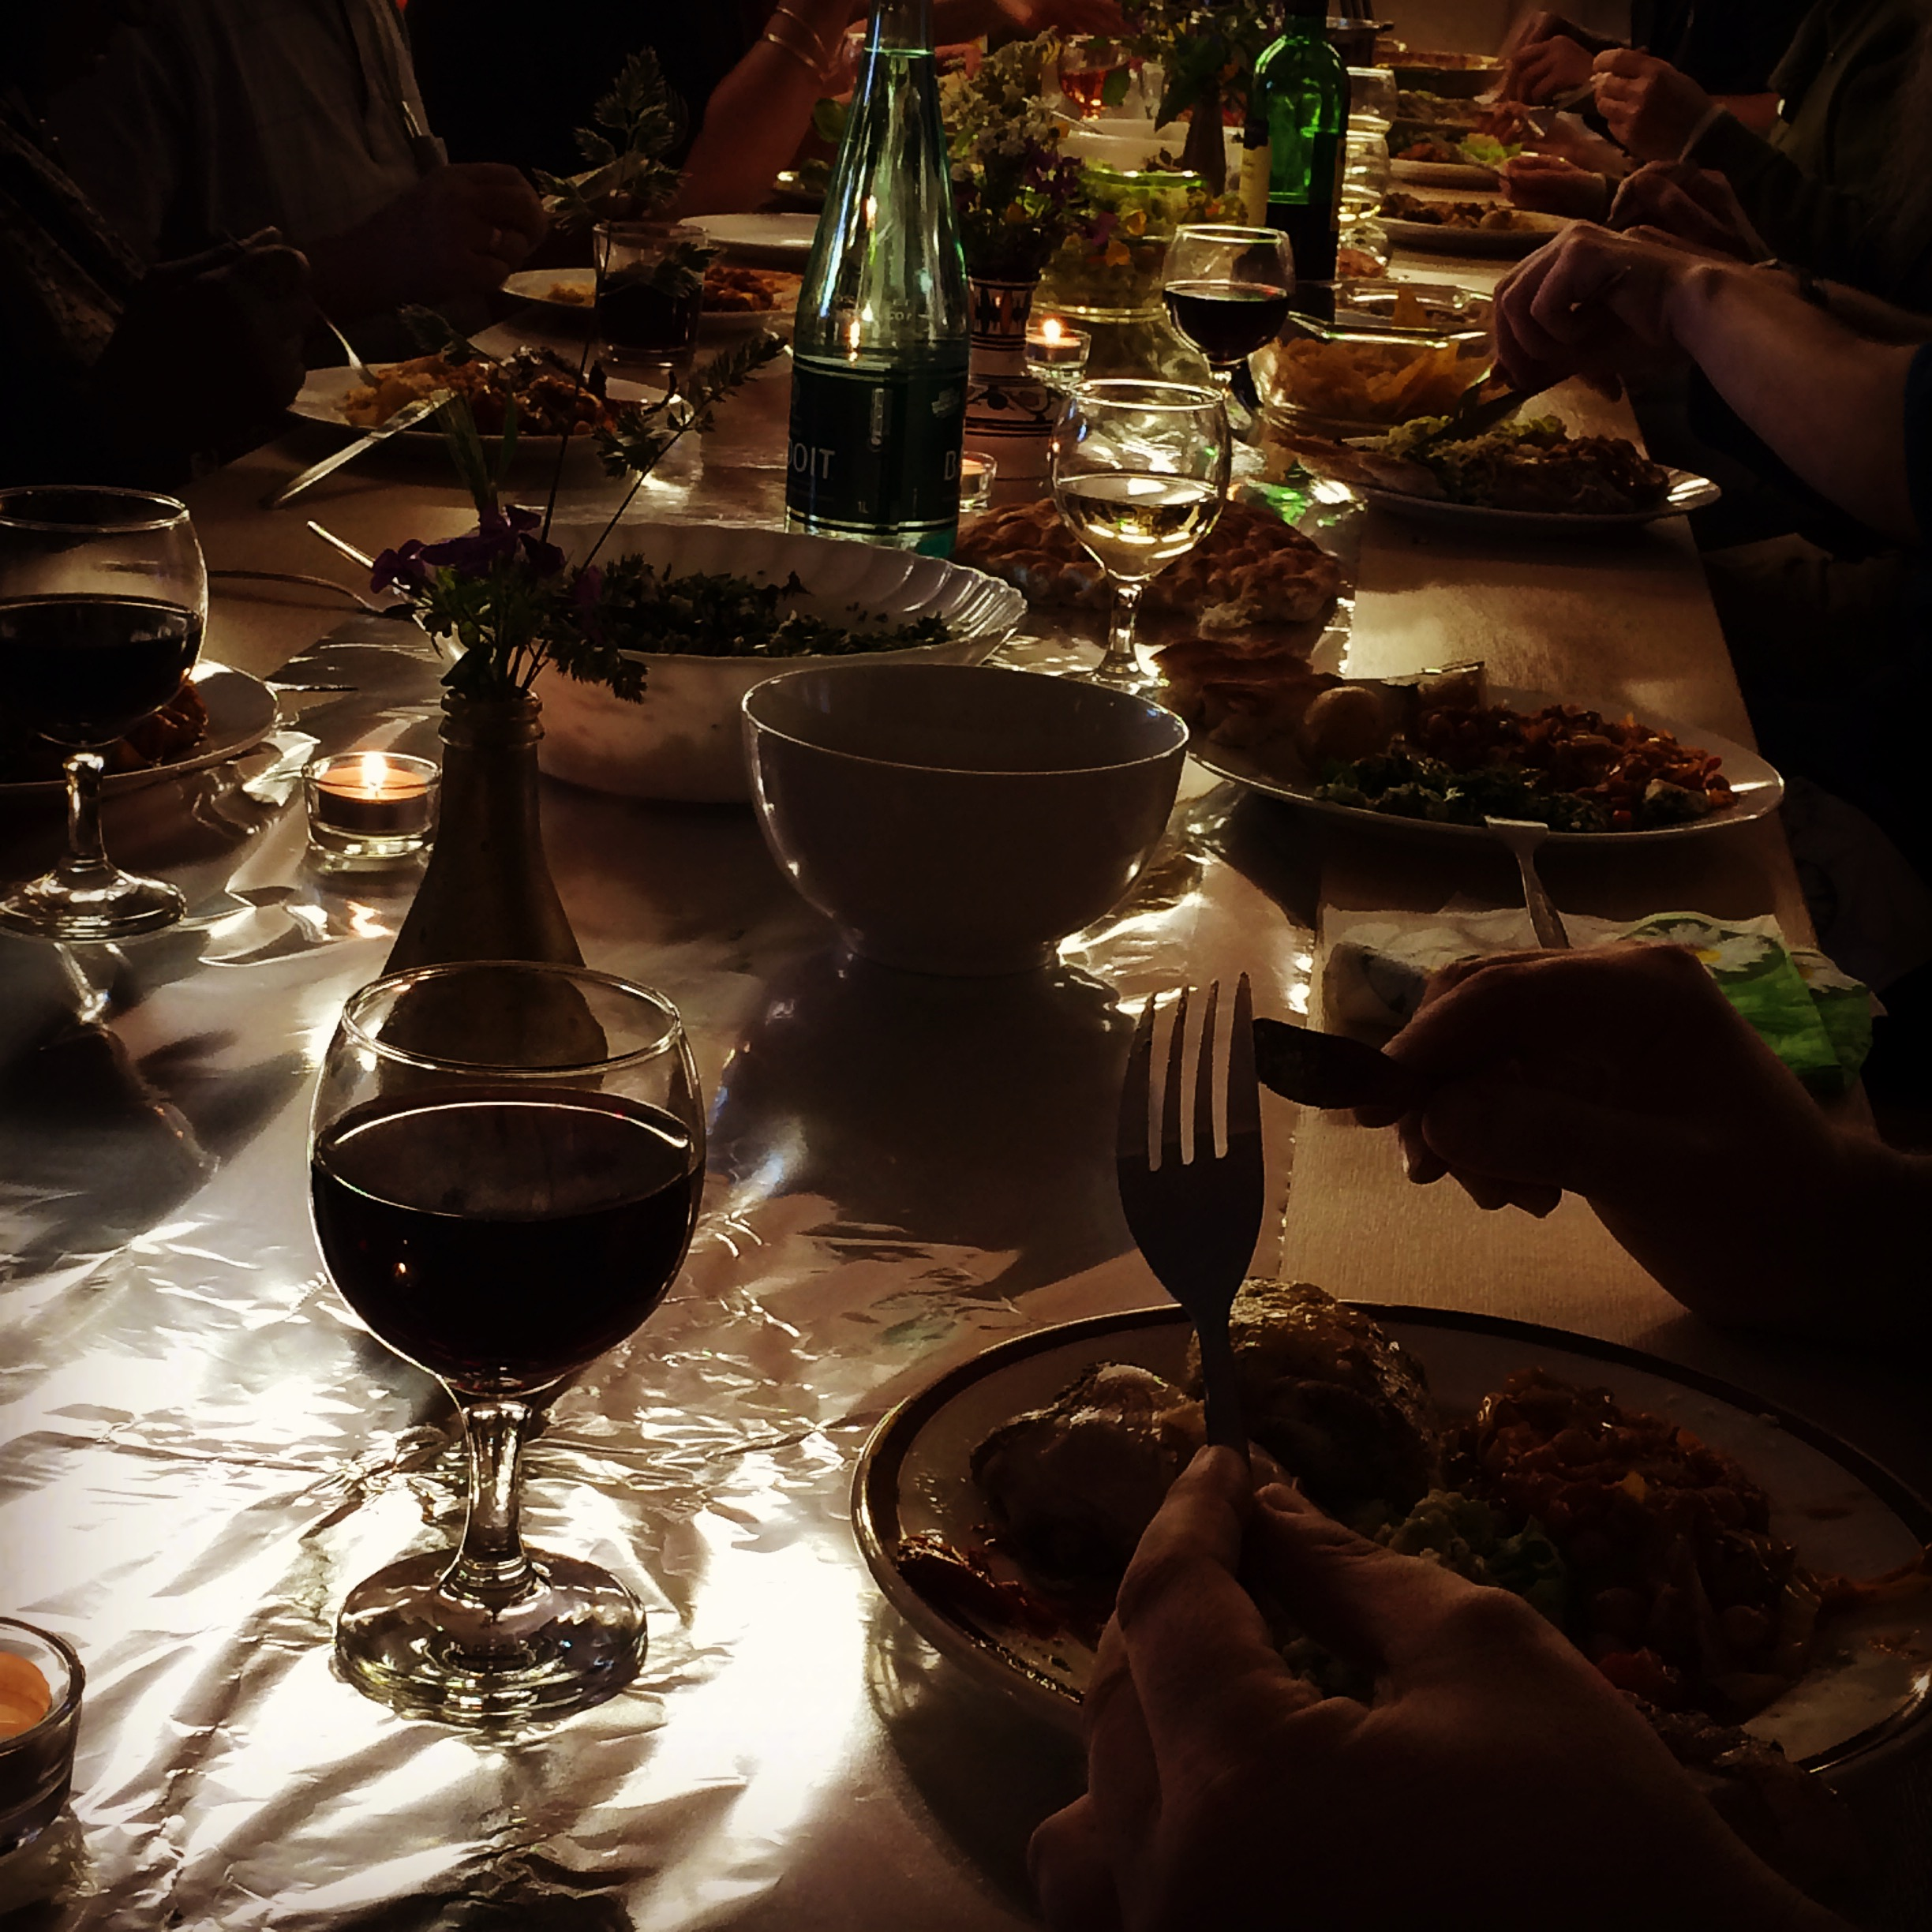 Dinner at the Carey Estate for residents, cooked by the artists, part of the drawing shed's Some[W]here in 9 Elms, Wandsworth project, May 2015